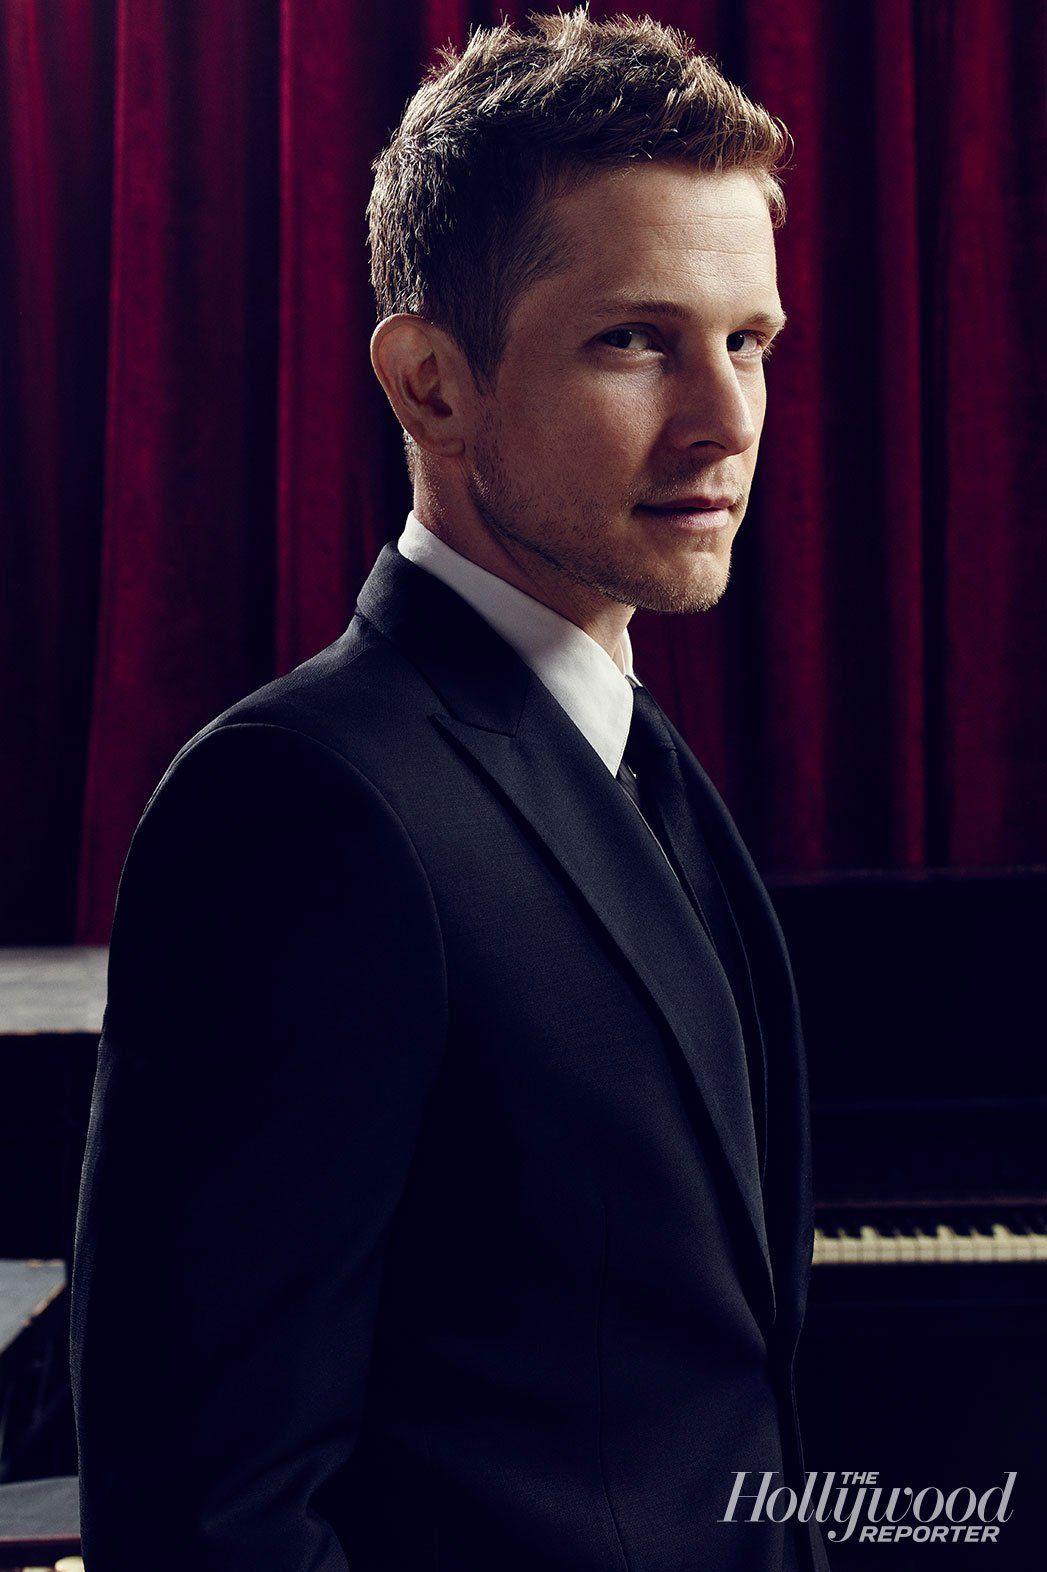 Emmys Thr S Star Studded Photo Shoot Gathers 28 Supporting Actor Contenders Matt Czuchry Girlmore Girls Gilmore Girls Cast